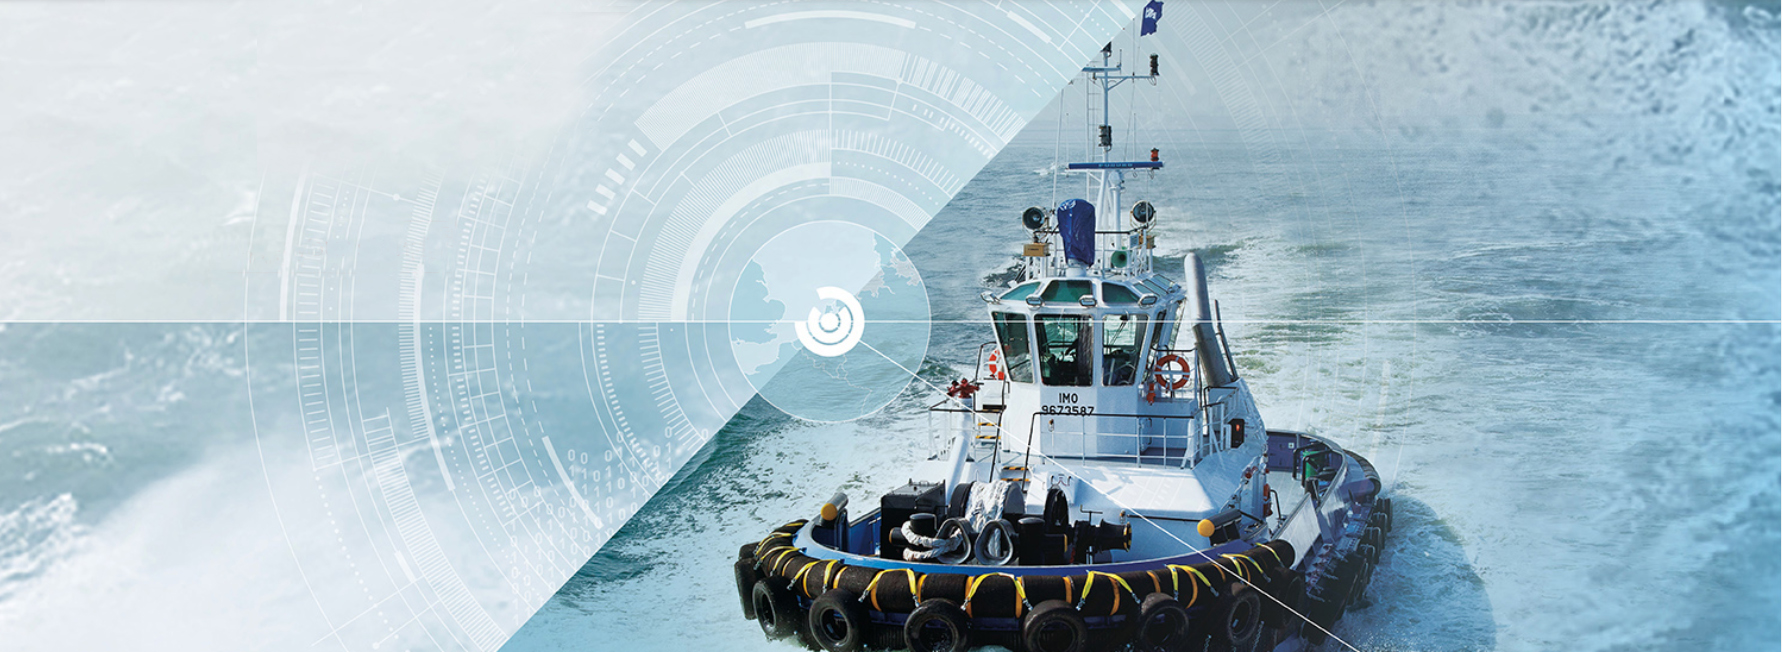 ELCEE is exhibitor at the Europort exhibition in Rotterdam